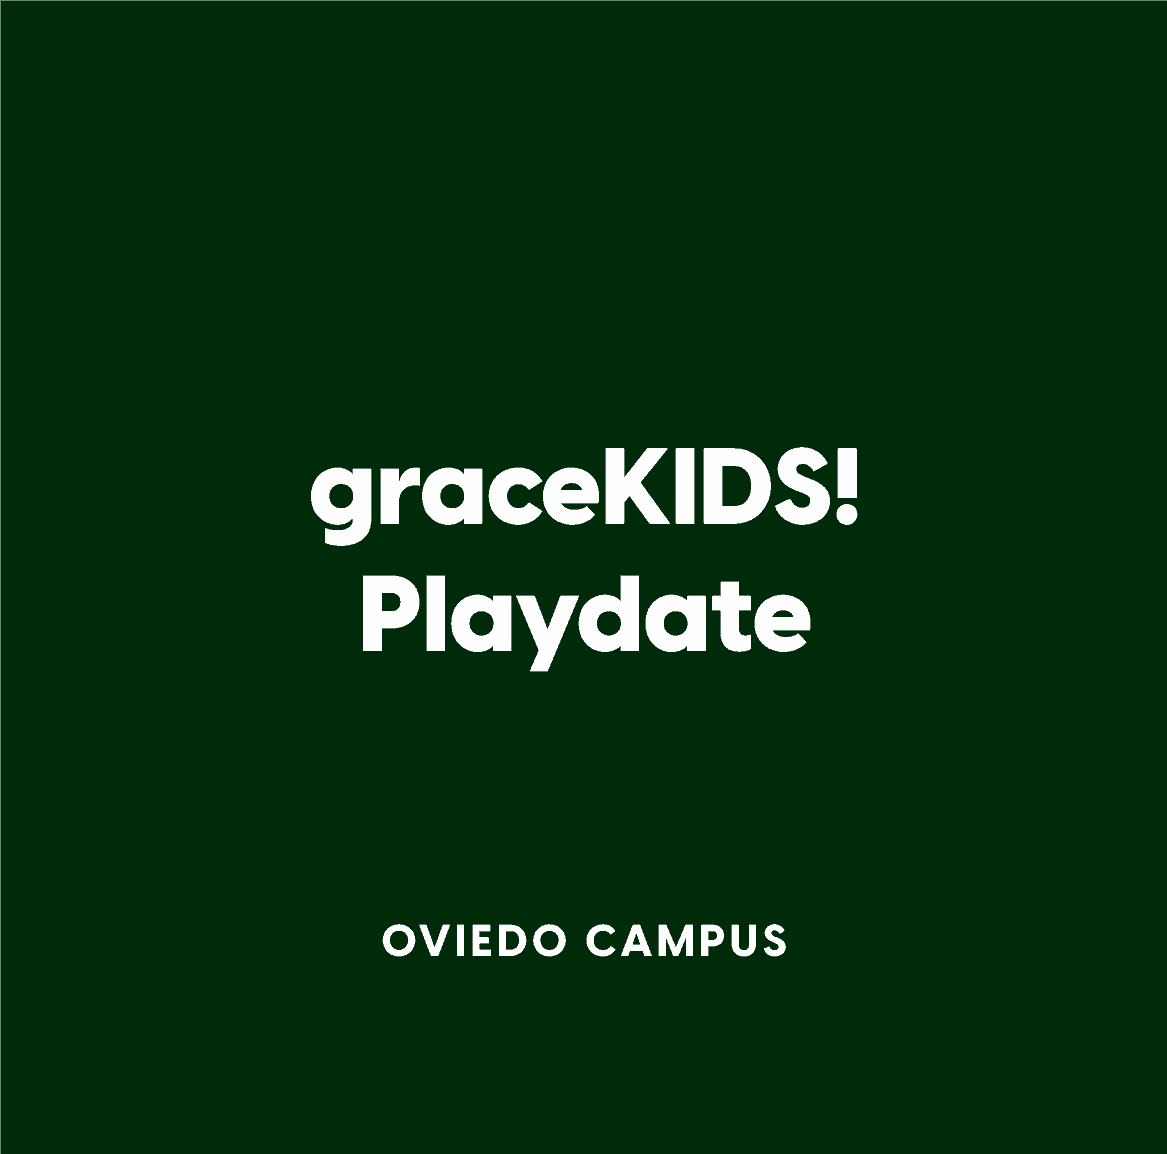 Oviedo graceKIDS! Playdate